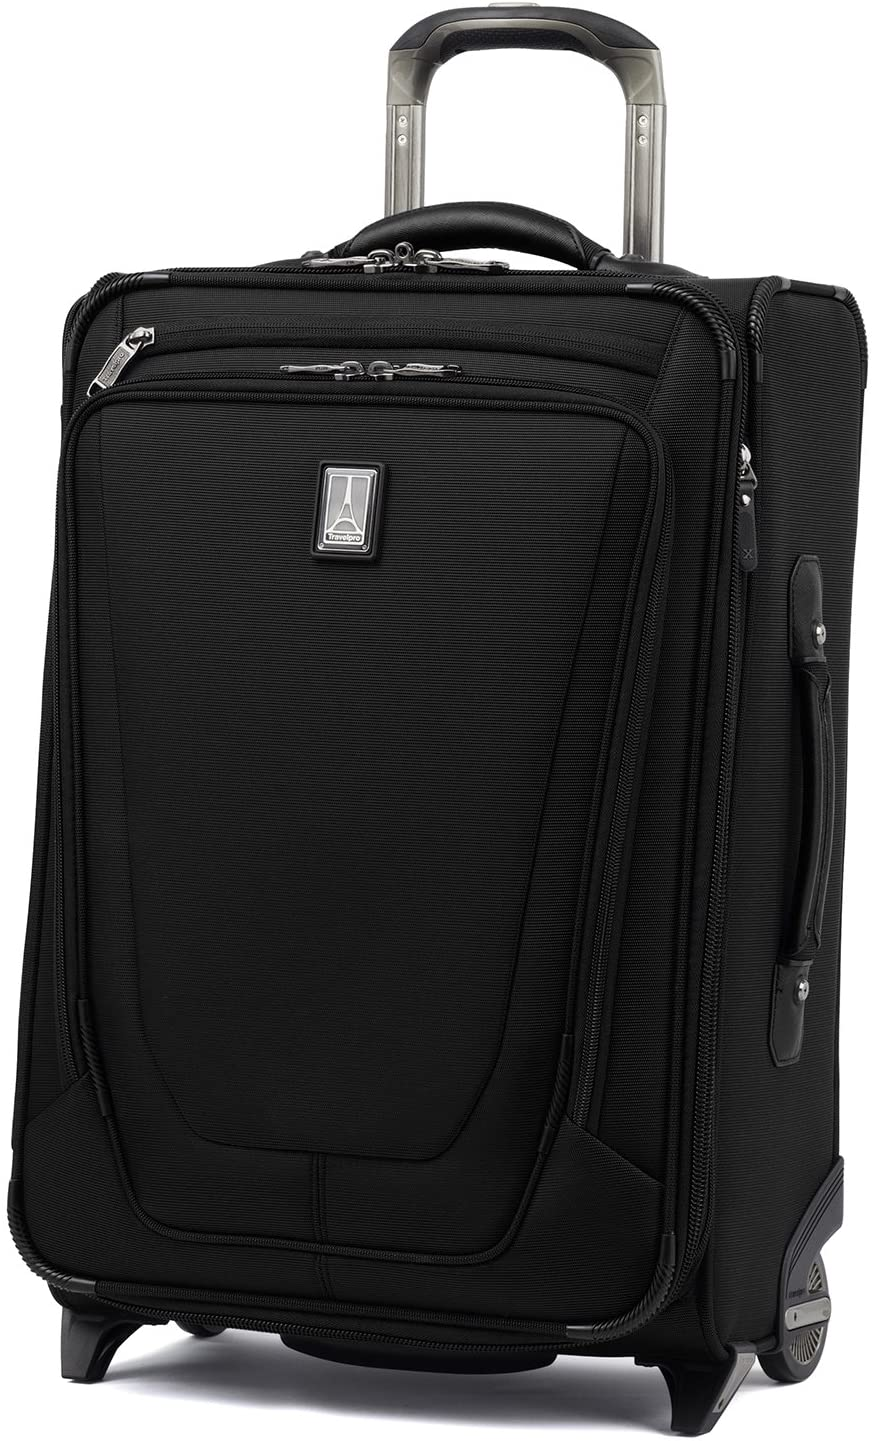 Travelpro Luggage Crew 11 22 Carry-on Expandable Rollaboard w Suiter and USB Port, Black